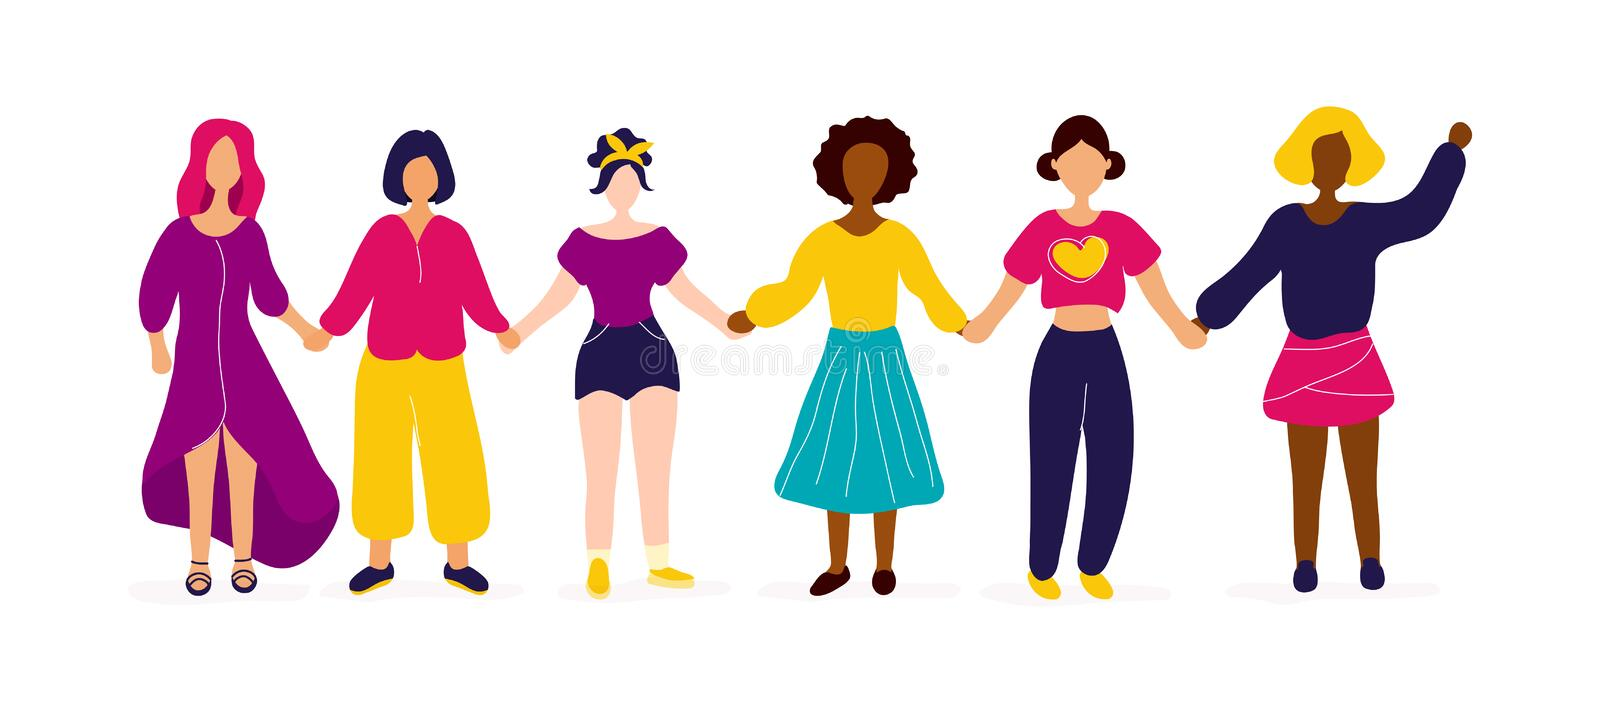 Interracial group of women holding hands. royalty free illustration